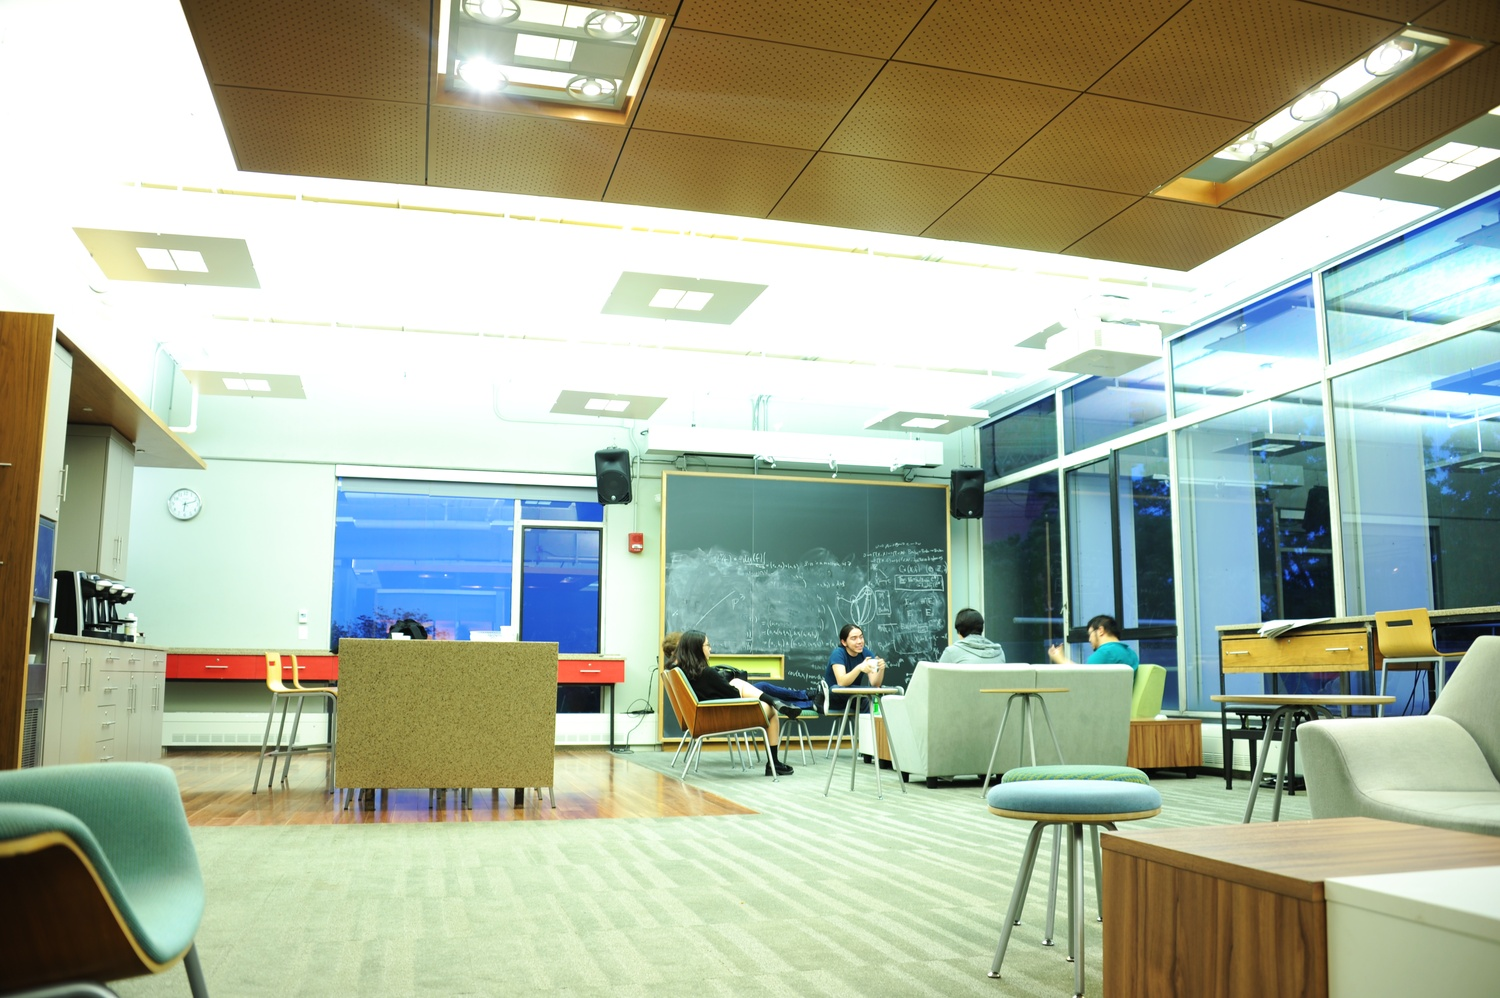 The Math Department's common room.